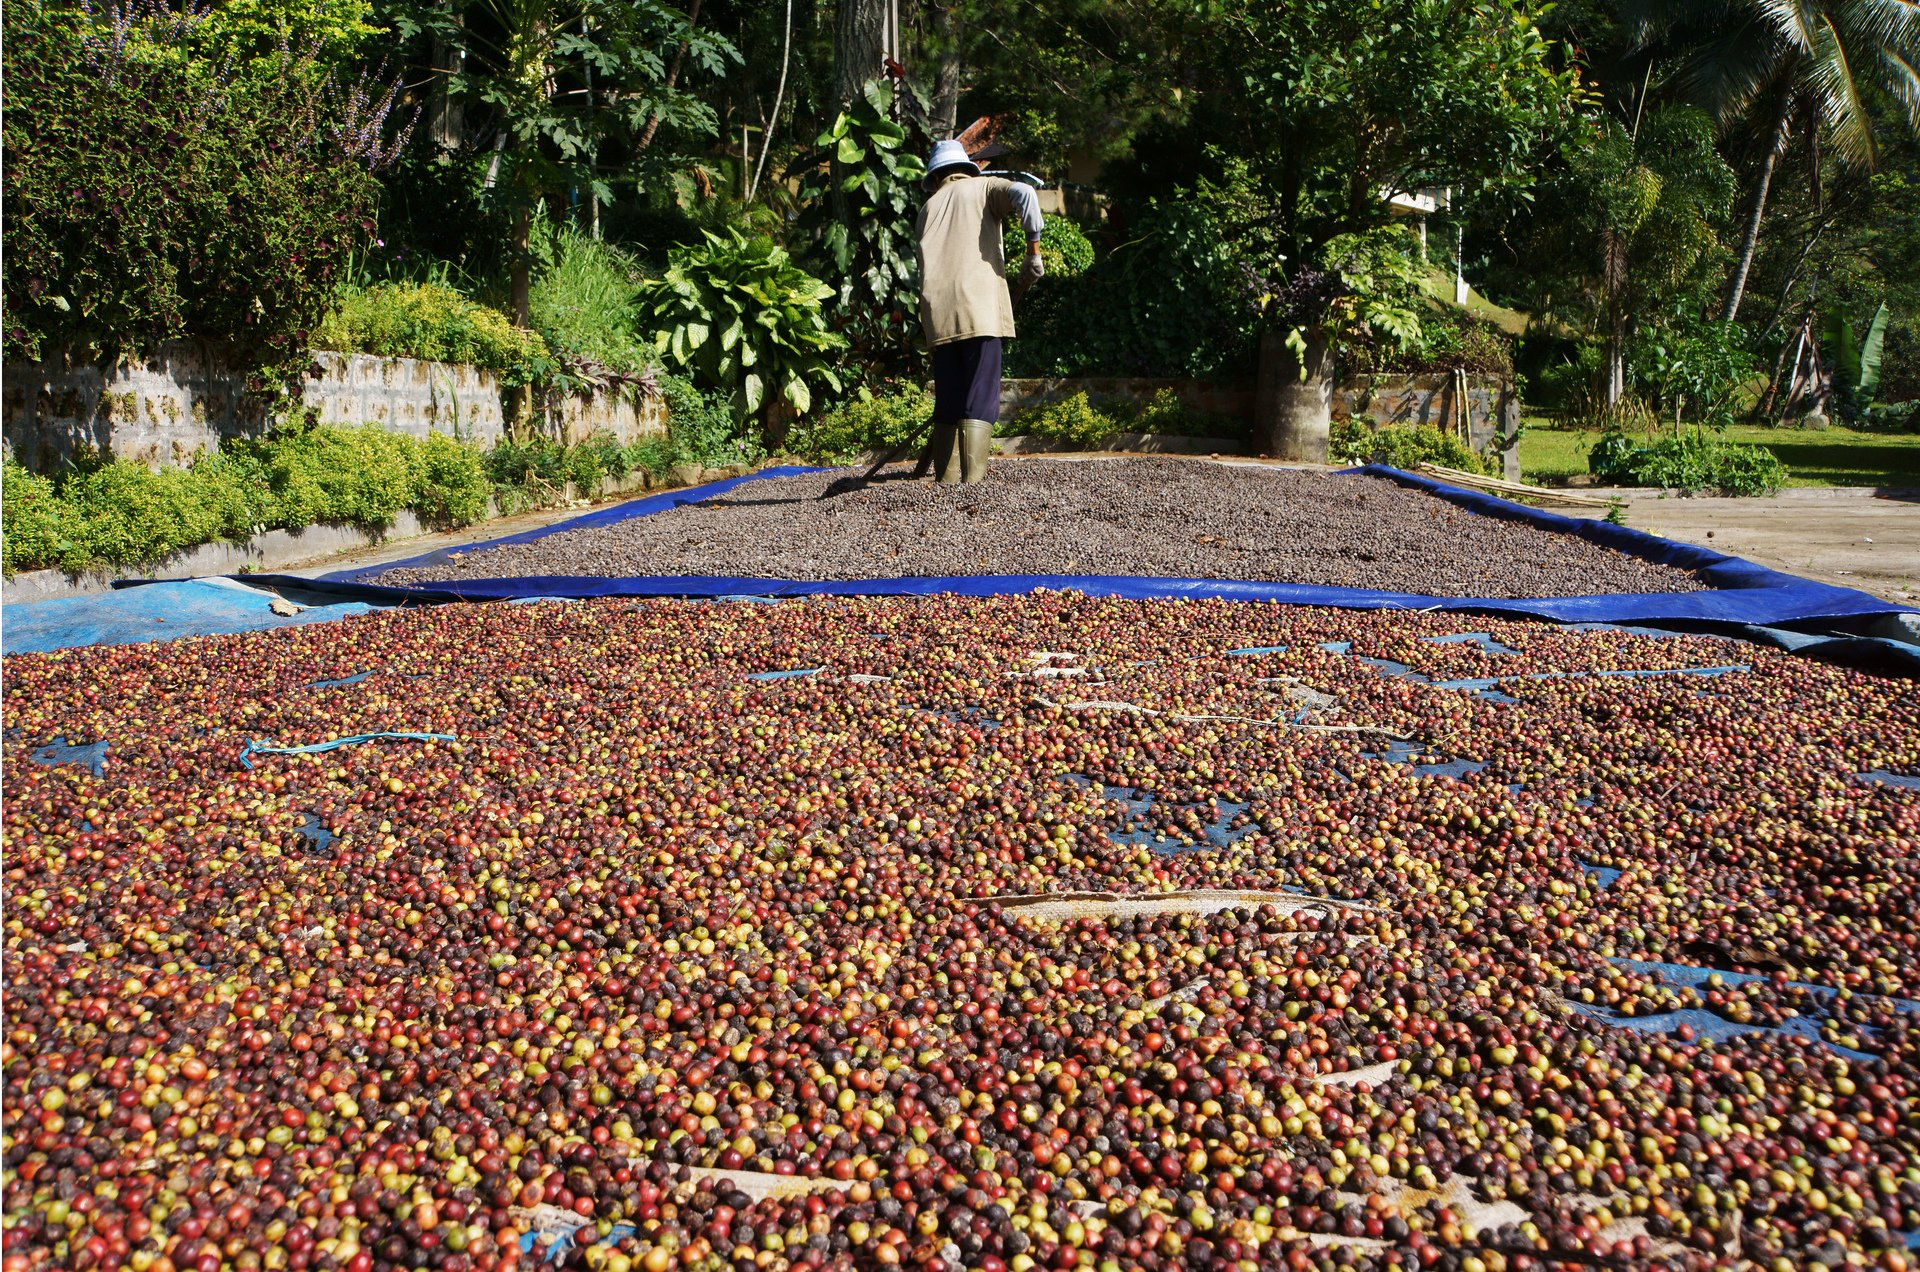 Coffee Harvest in Java 2020 - Best Time